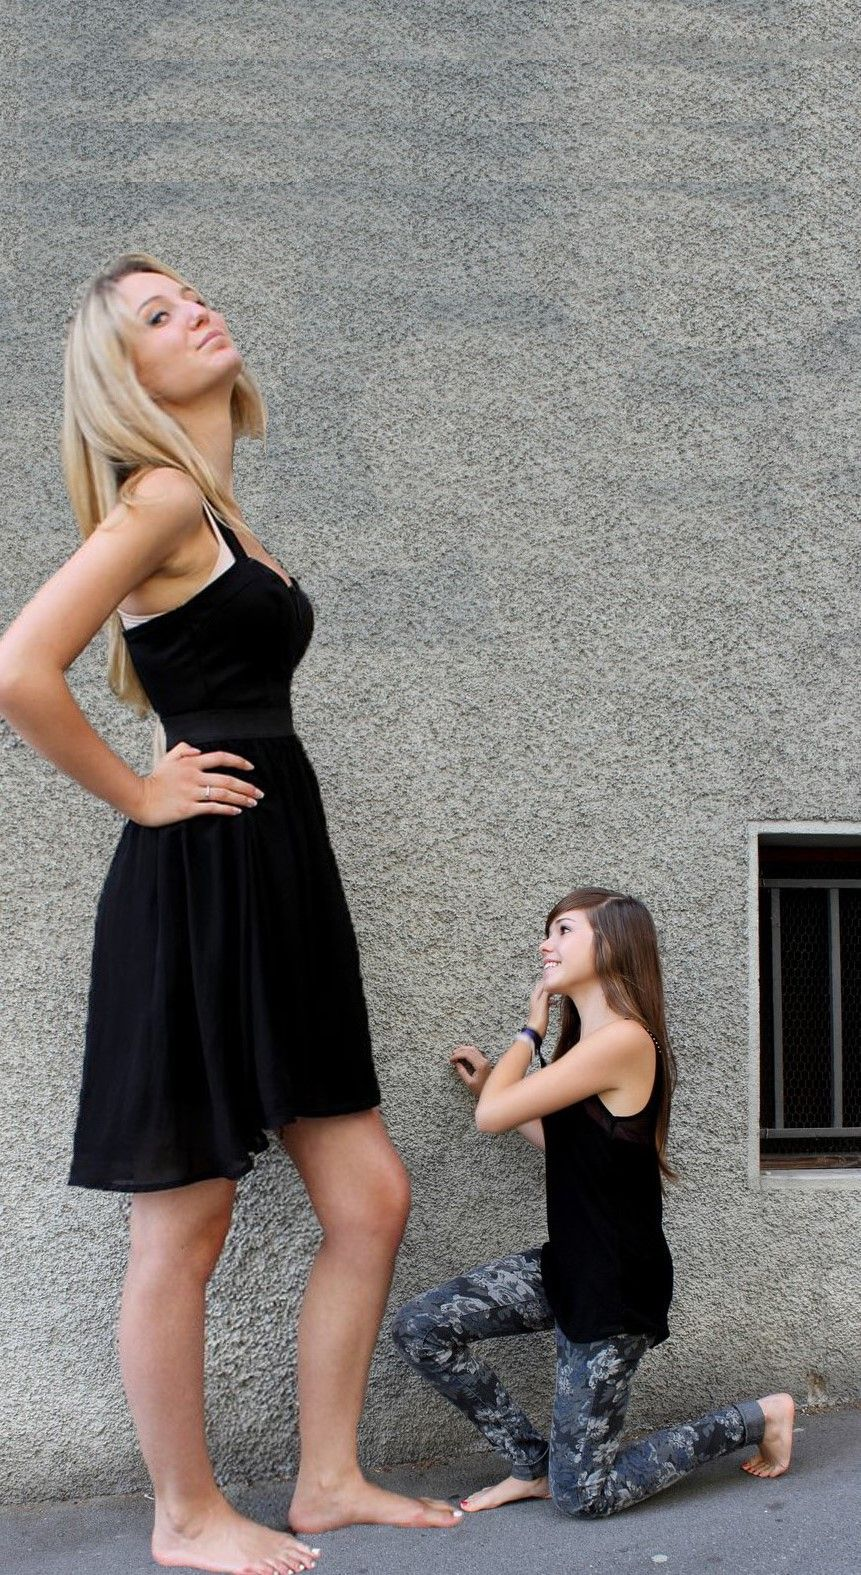 Worship me little one Shrinking Women